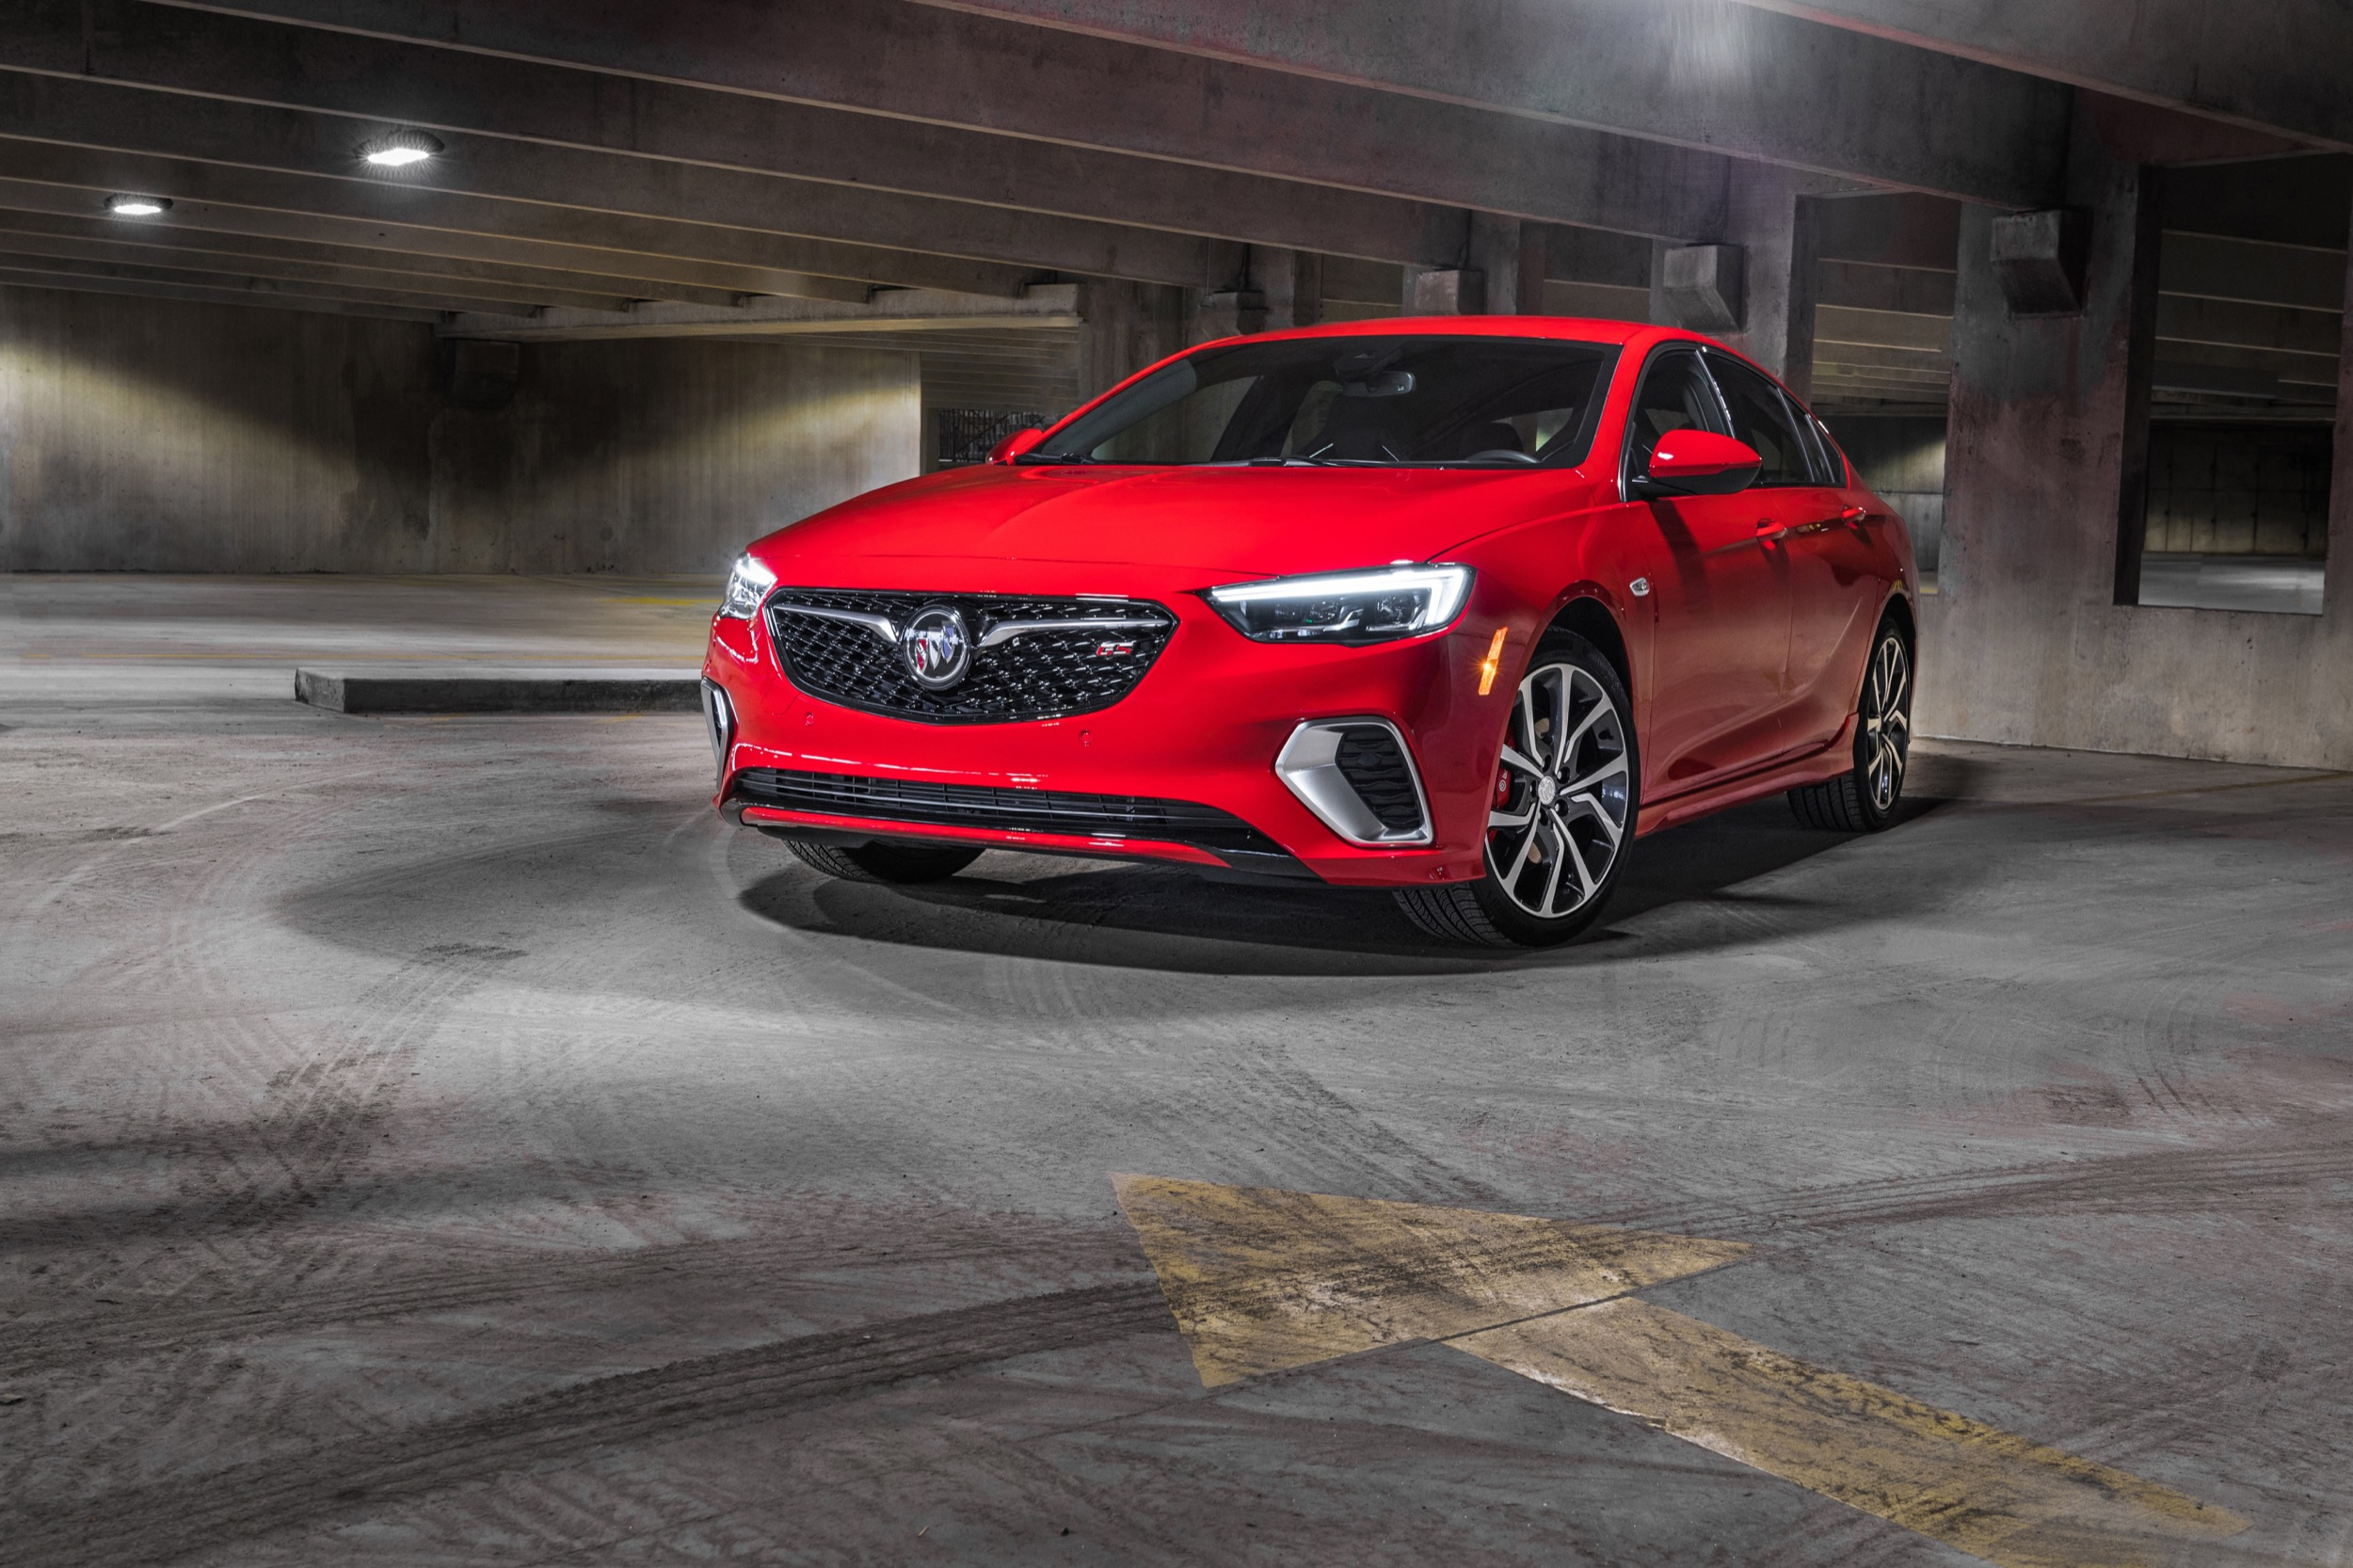 2022 Buick Regal Info, Specs, Wiki | Gm Authority Show Me A New 2022 Buick Regal